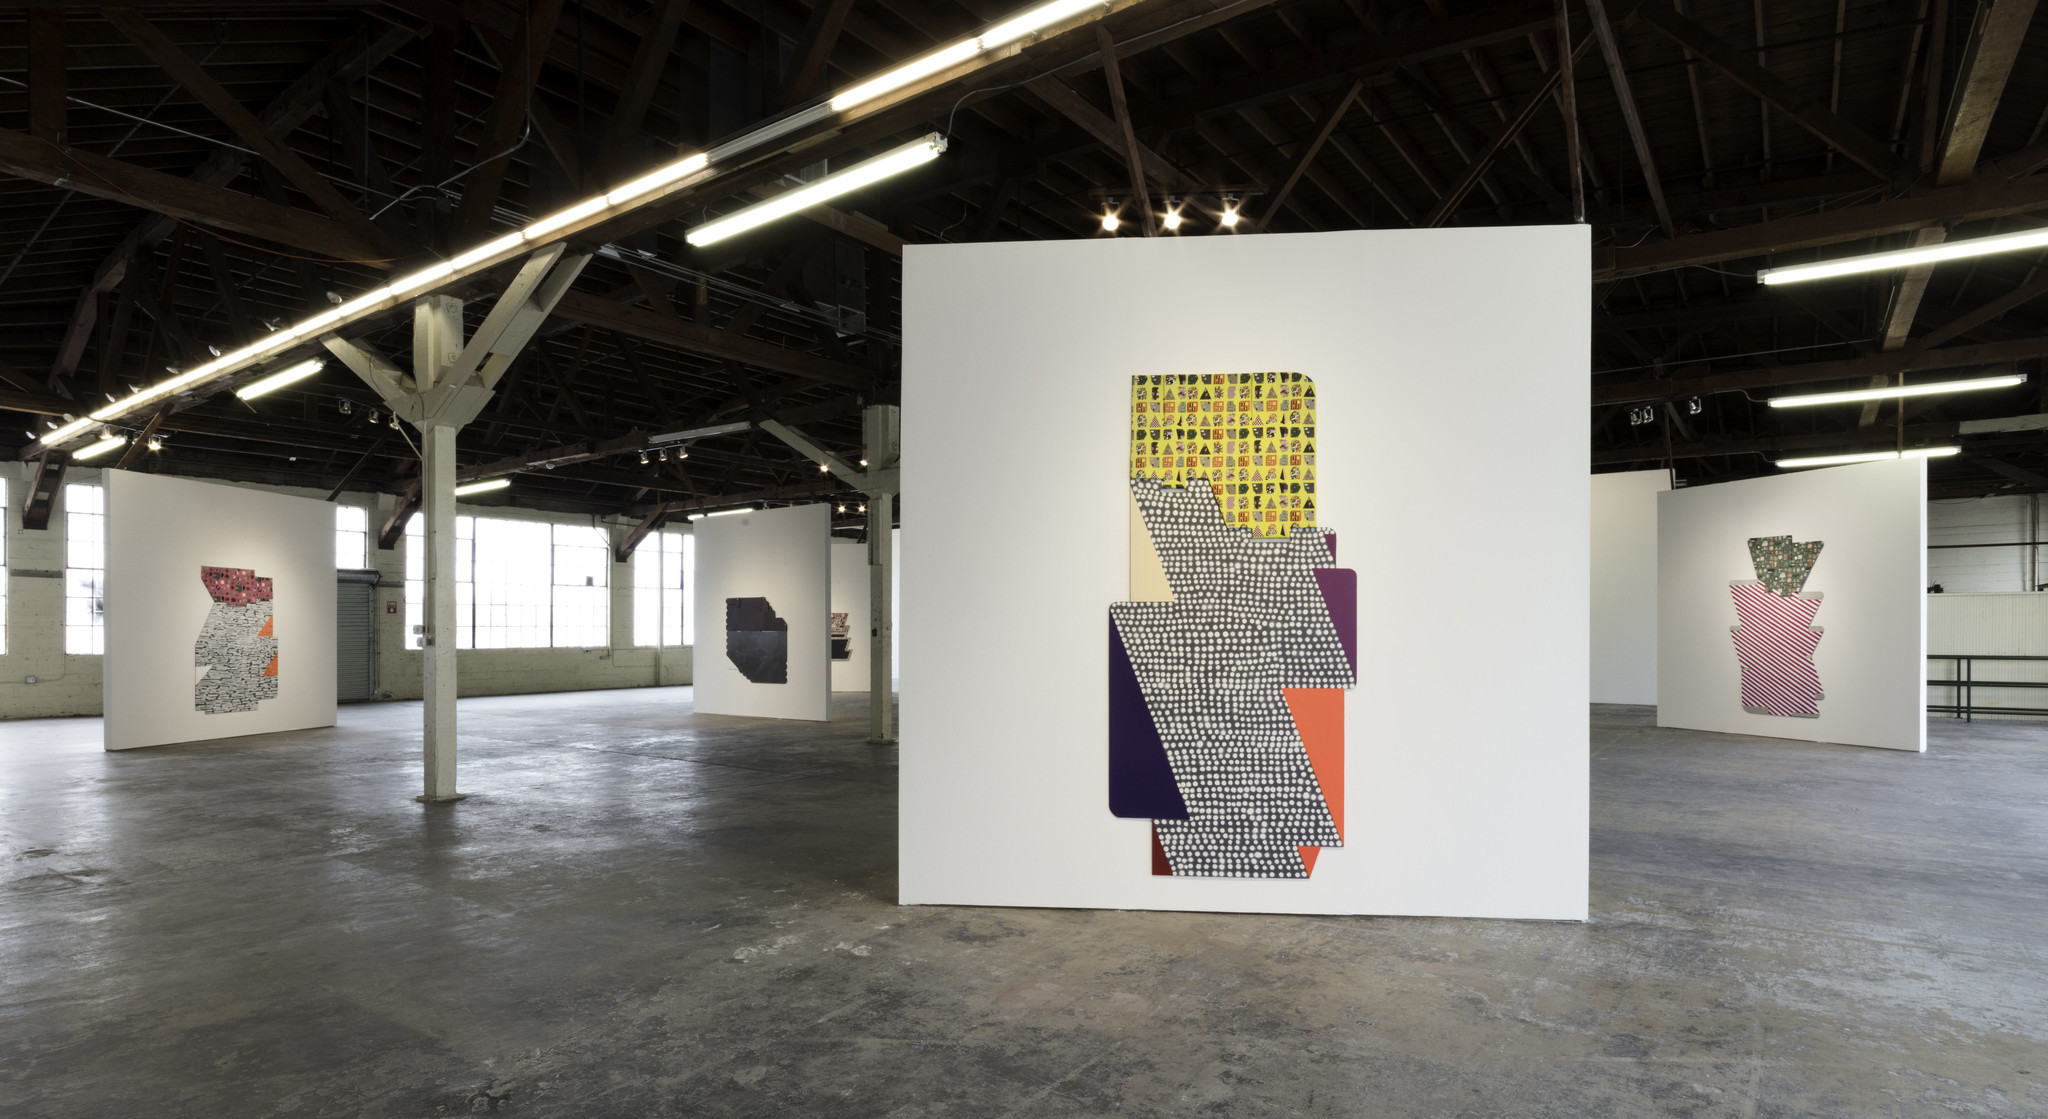 Installation view of the Ruth Root show at 356 Mission.